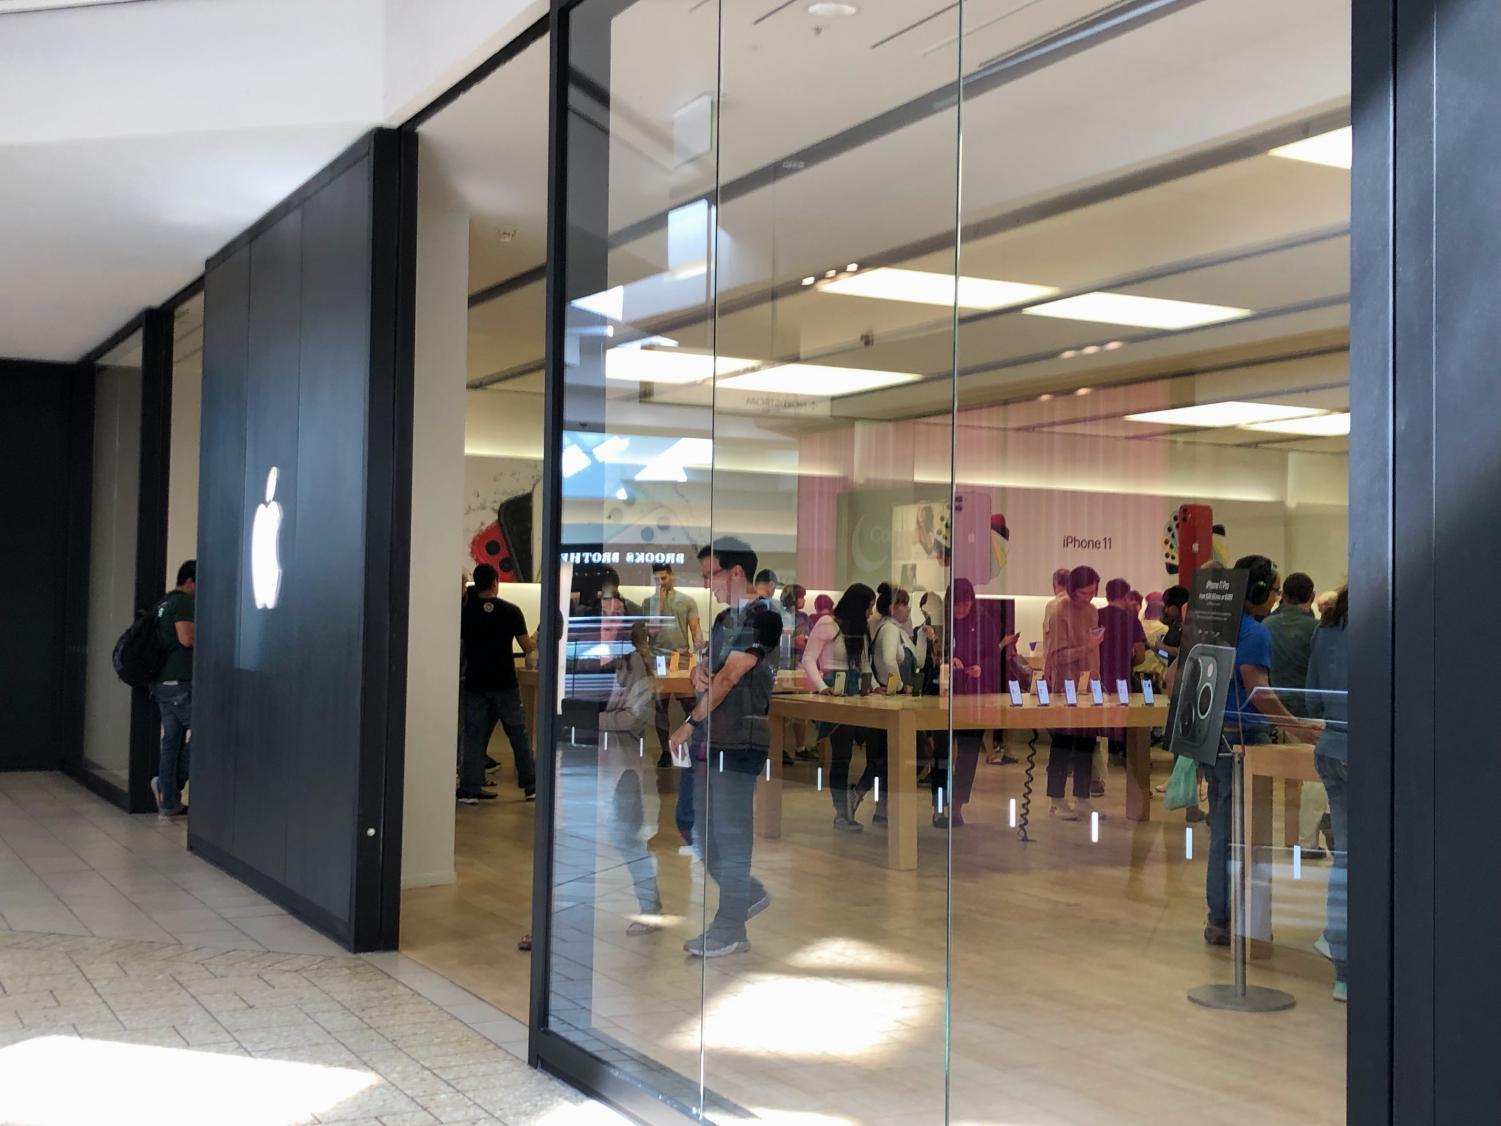 The Apple store in the Cherry Creek mall is filled with awaiting customers looking at the many products they sell. (Stephanie Pickens)